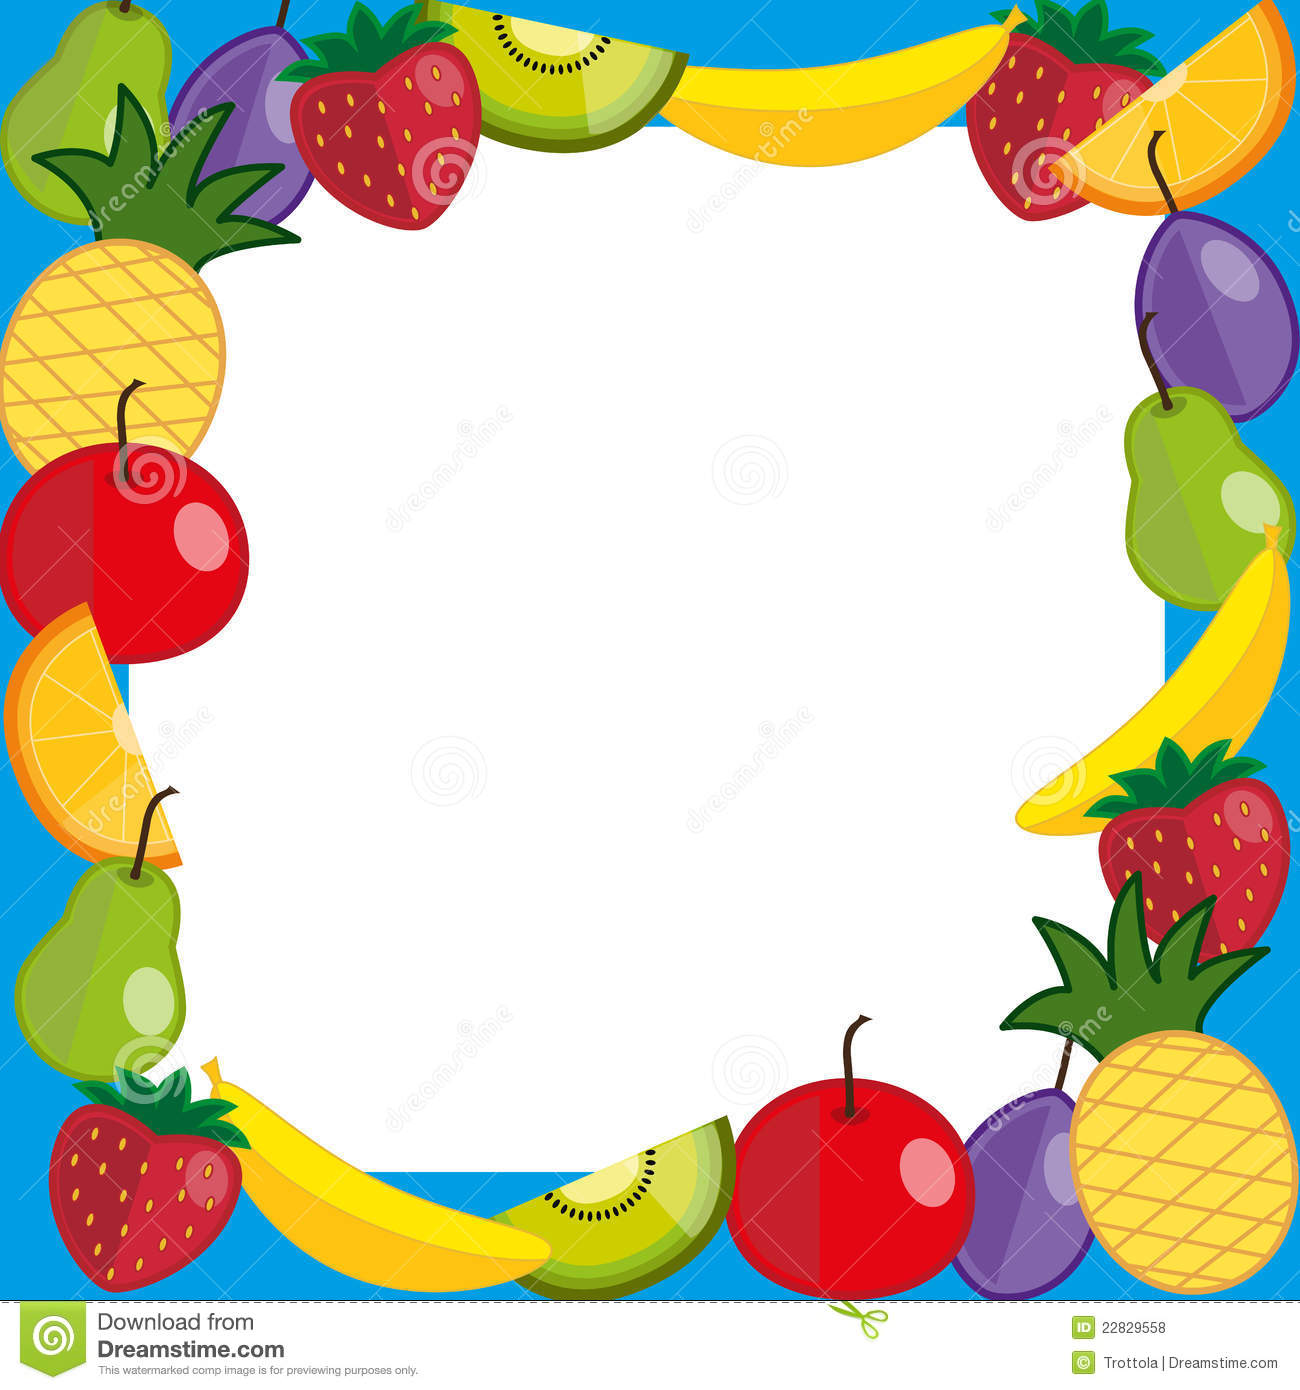 Fruits Photo Frame Royalty Free Stock Photos - Image: 22829558